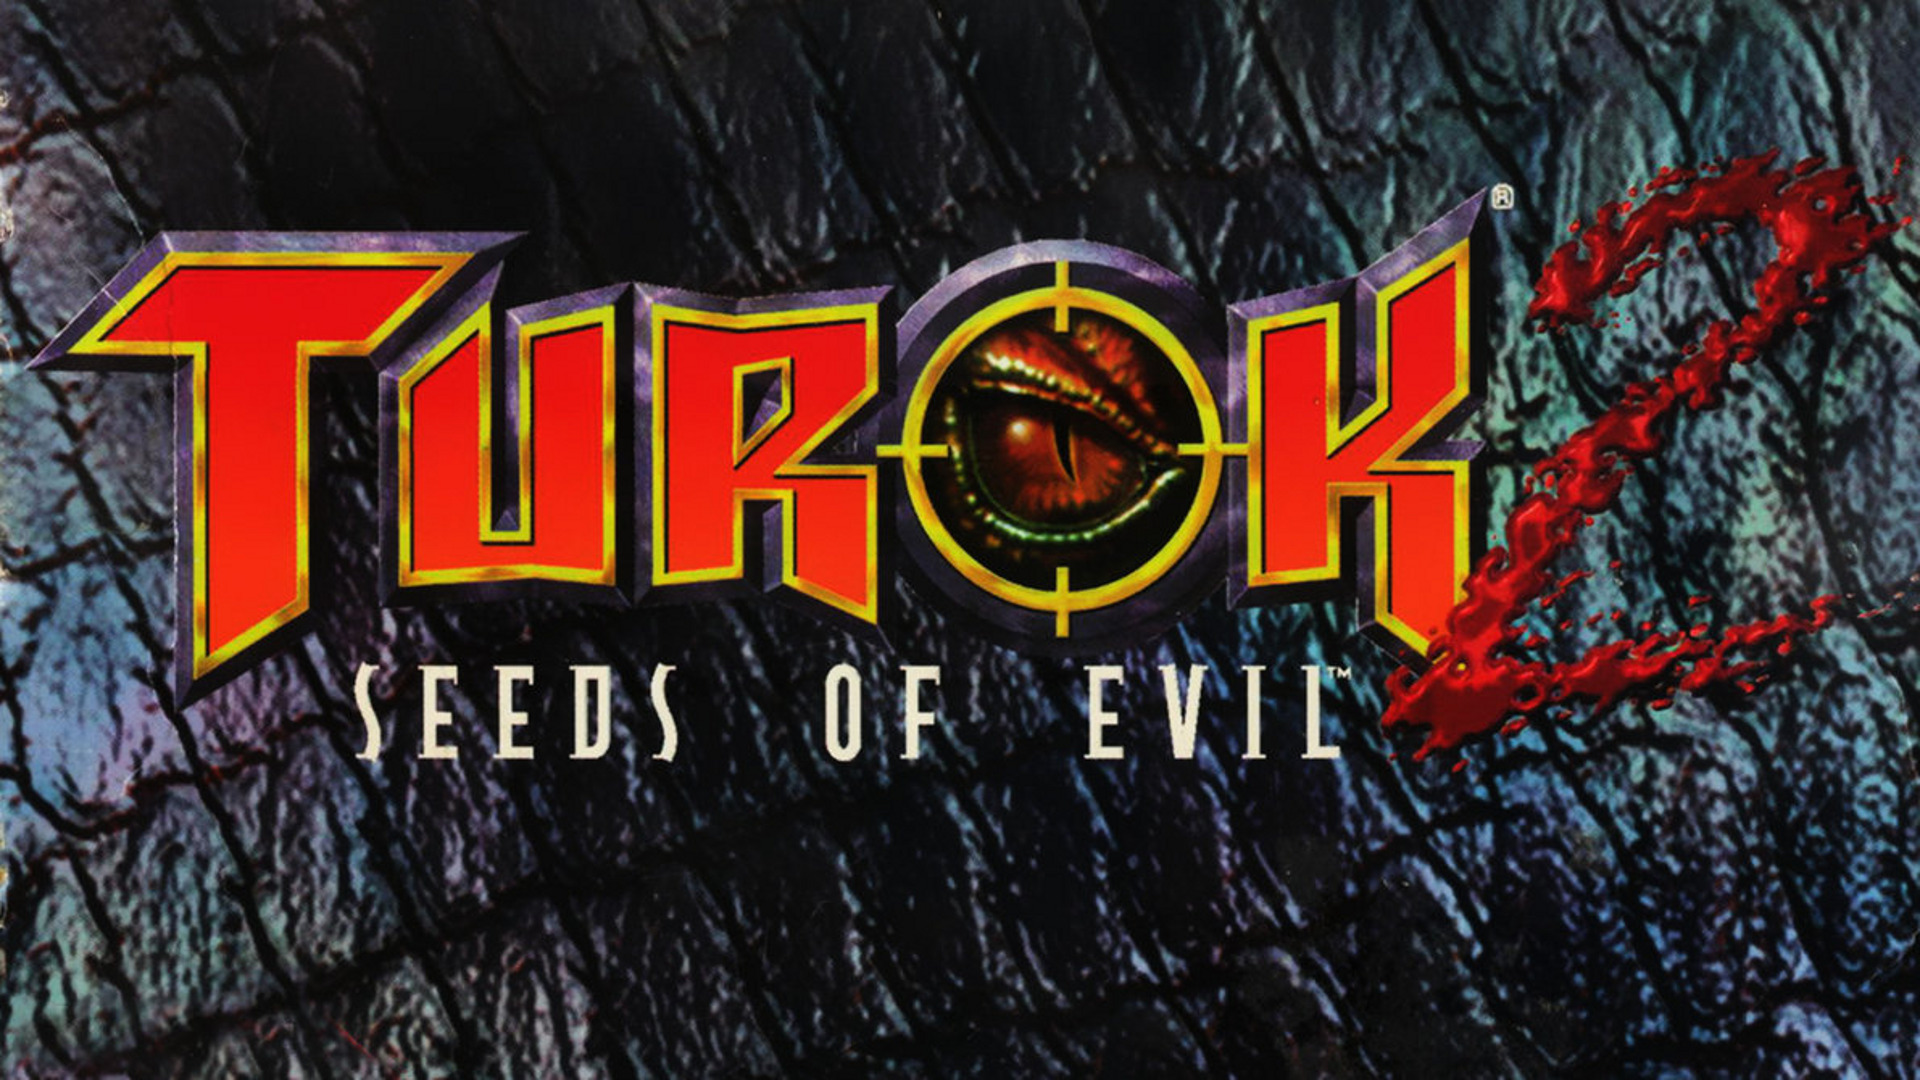 Turok 2 Ascension mod improves textures, adds double jump, brings more gore/blood and more